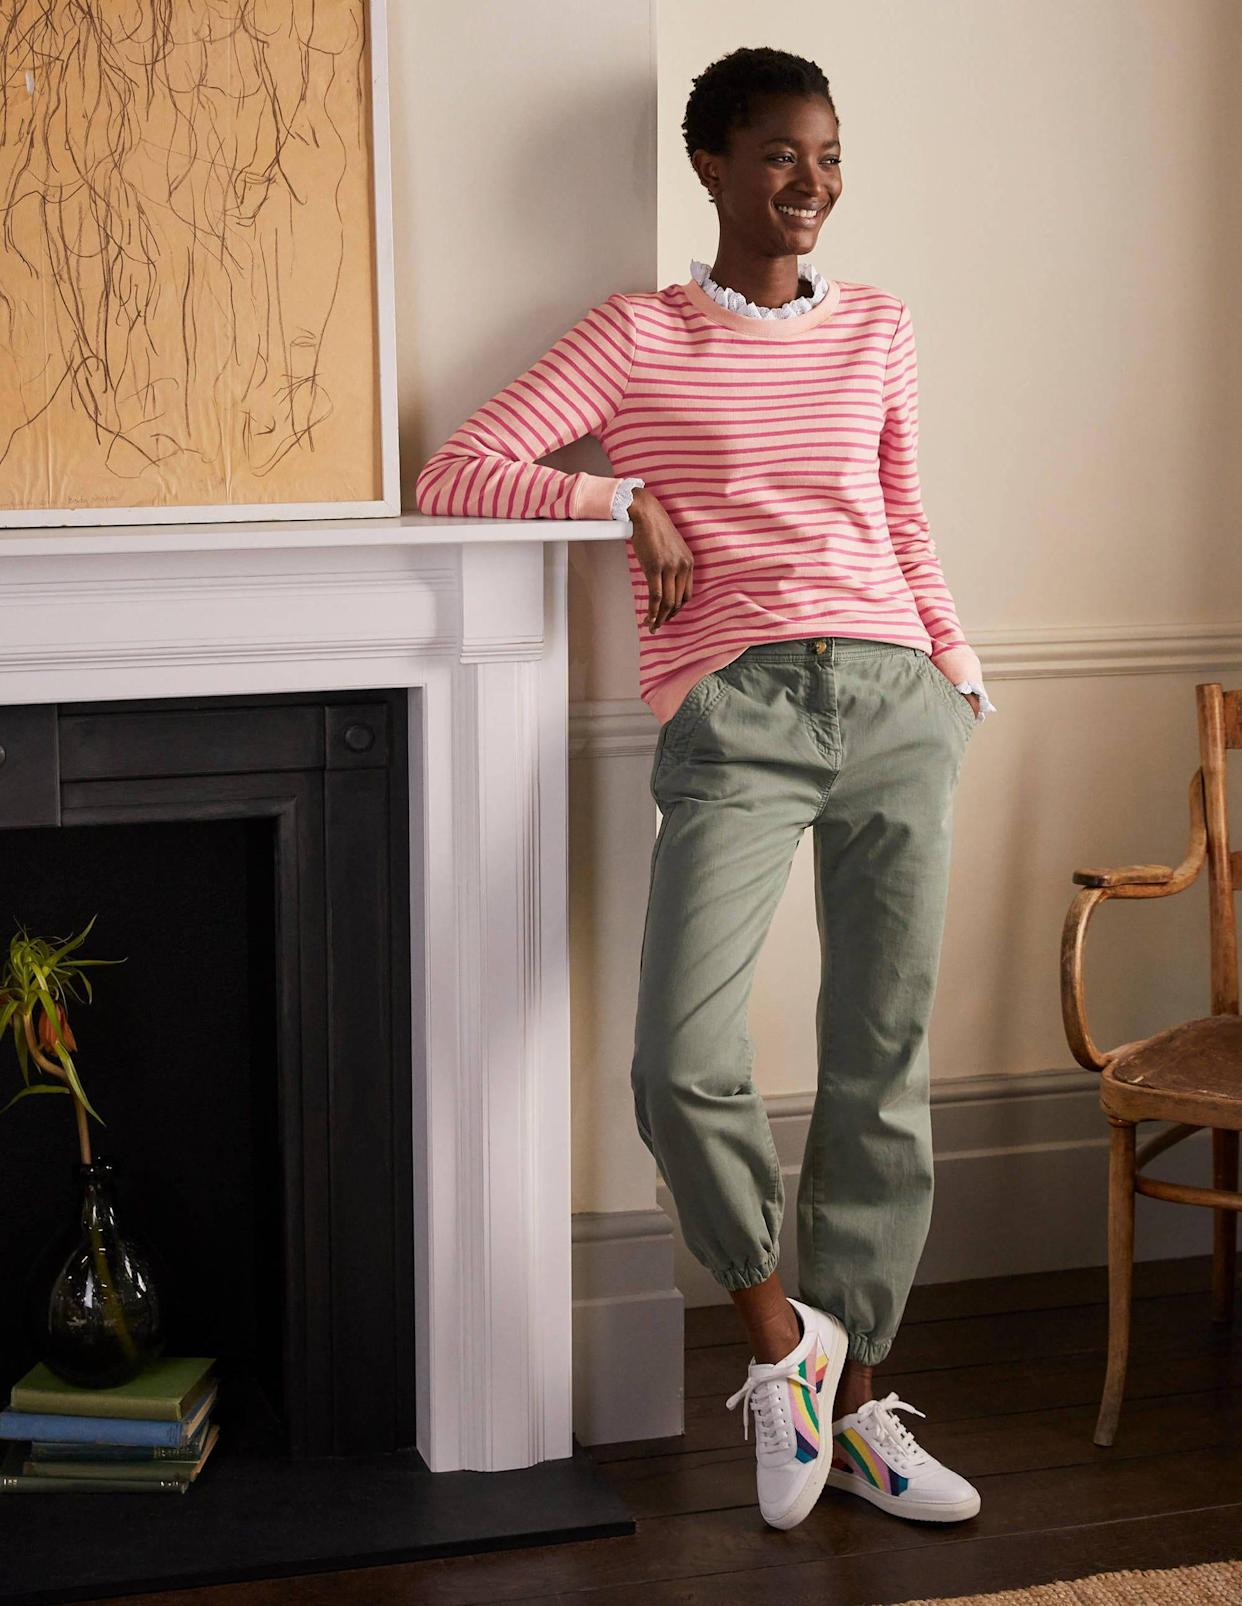 It's sold out already in many designs, but is still available in three hues. (Boden)